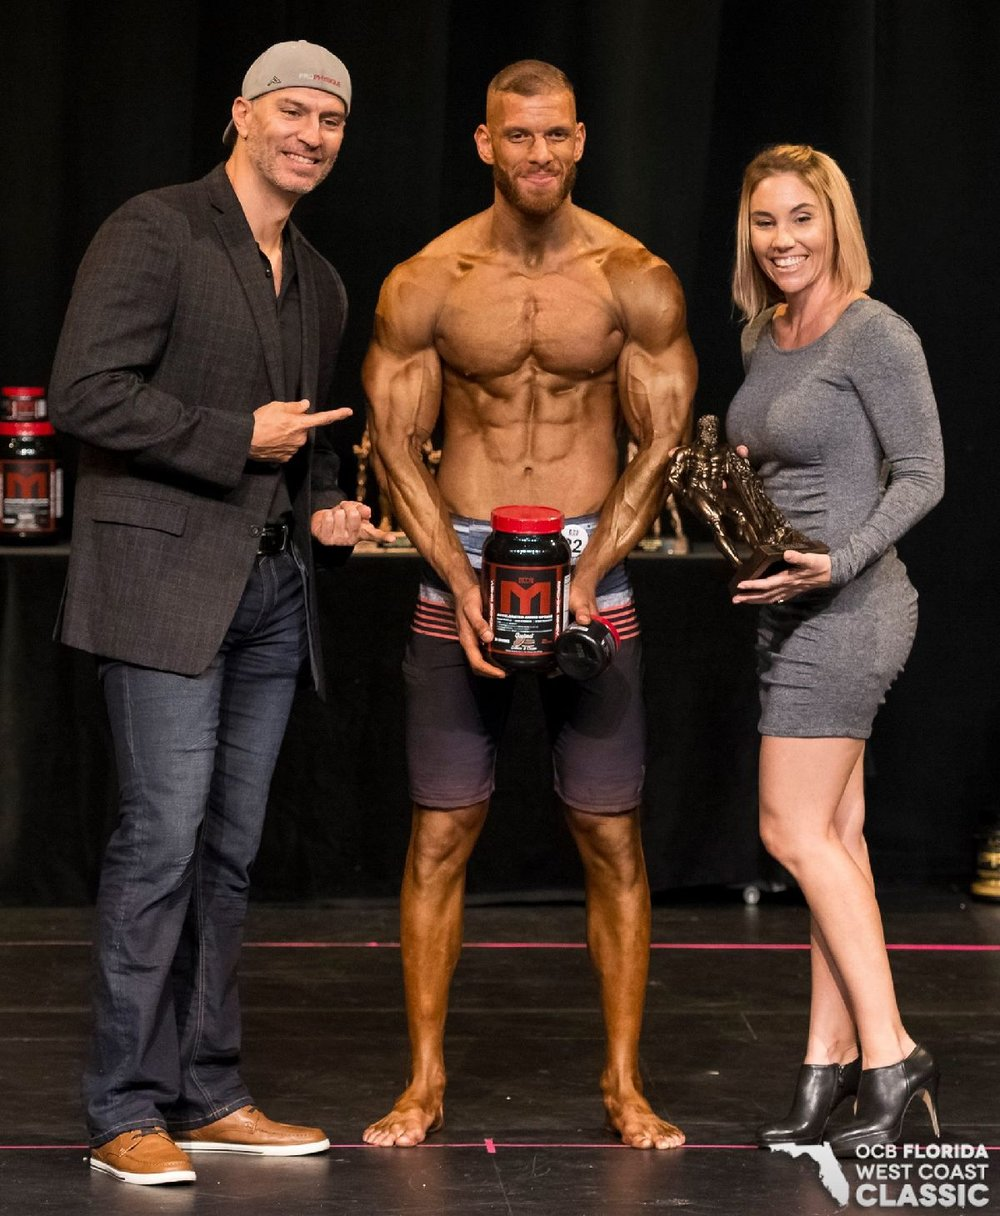 Muscular profit margin; men's physique was designed as a reaction to help mismanaged bodybuilding competitions regain revenue margins.